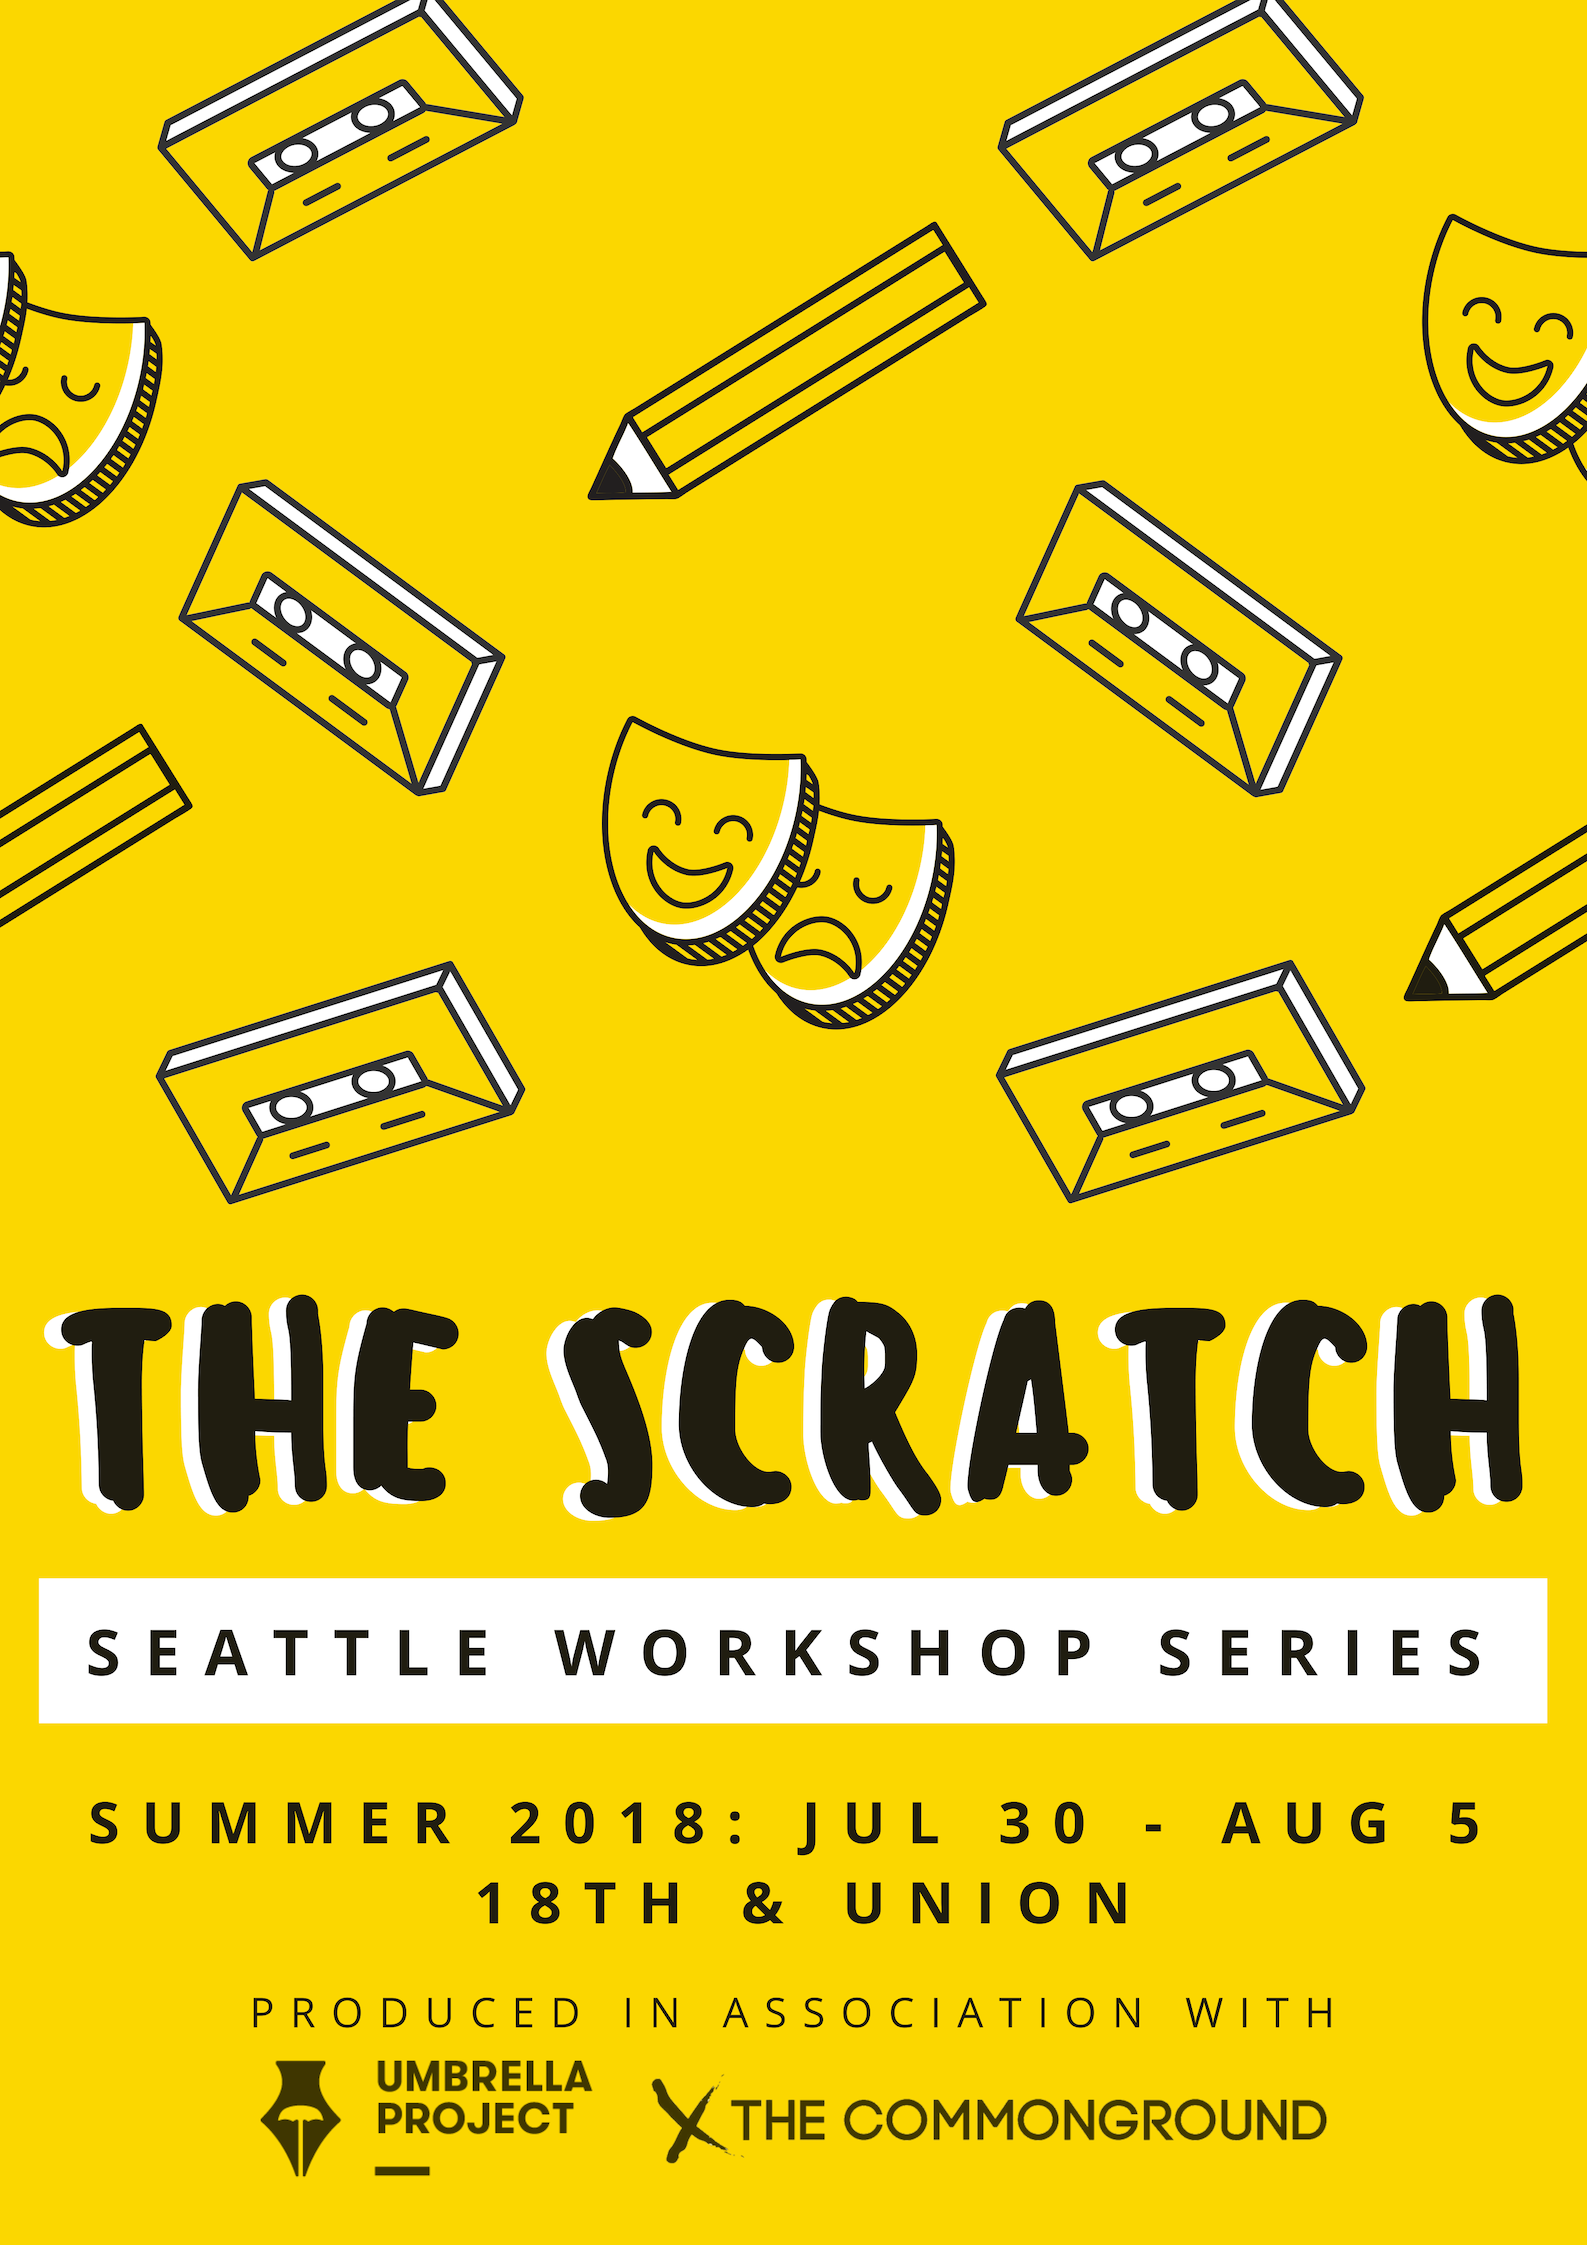 2018 - 1. Lead Graphic Redesign - The Scratch - Seattle Workshop Series- Summer 2018.png